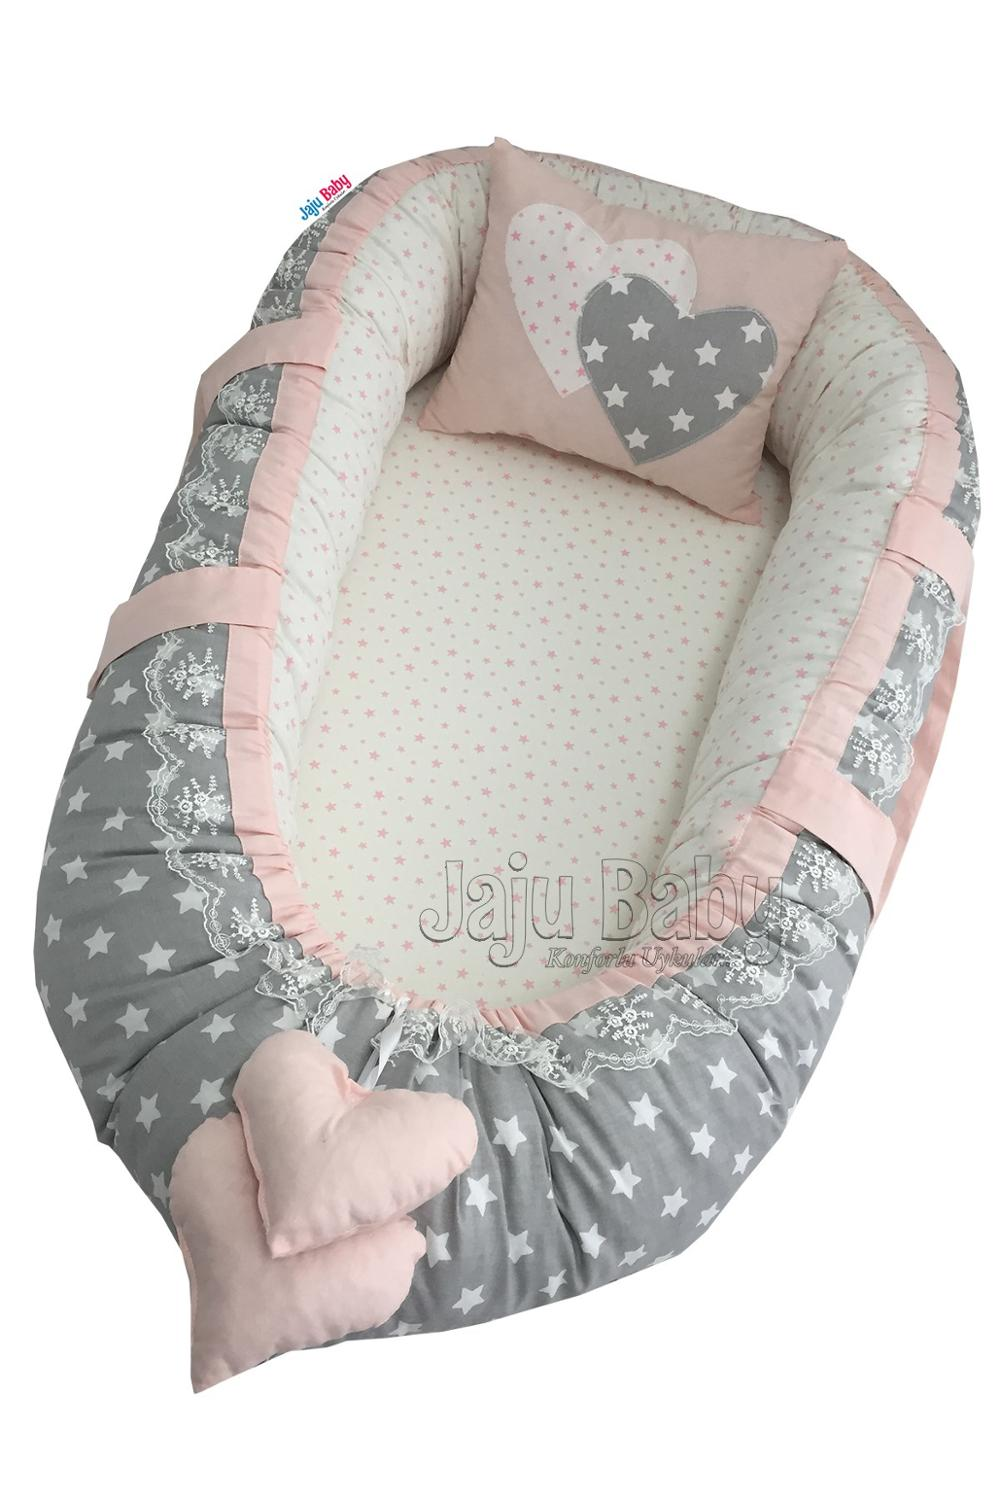 Jaju Baby Gray Love Baby Nest